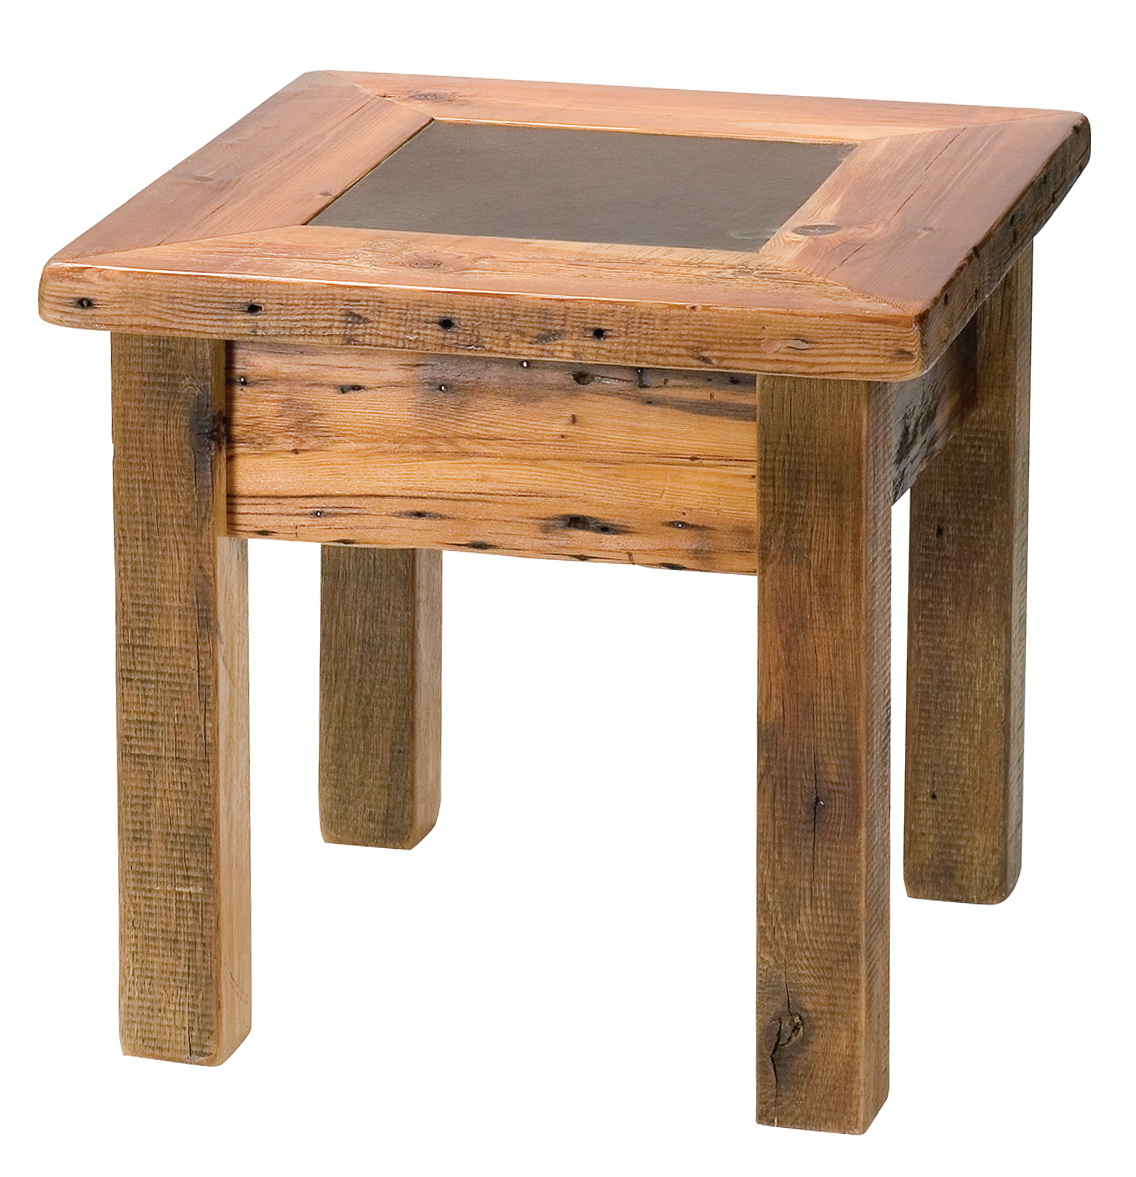 Rustic Side Table Plans